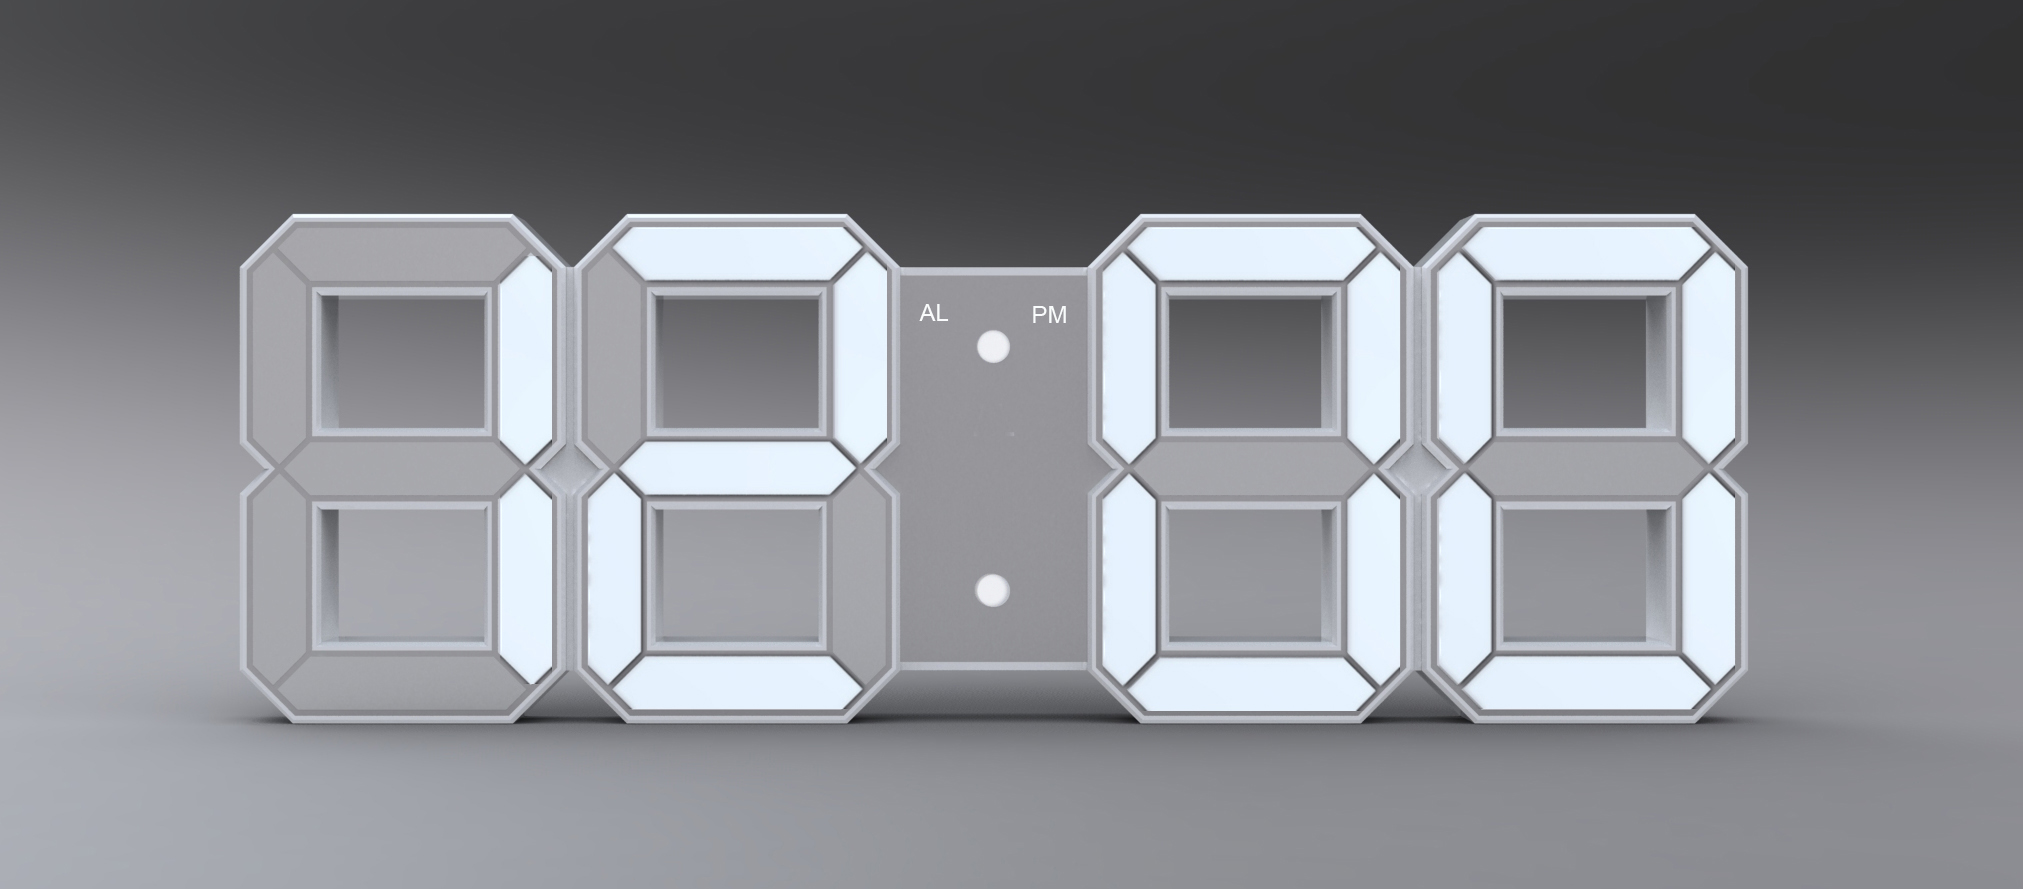 Digital clock Meyer